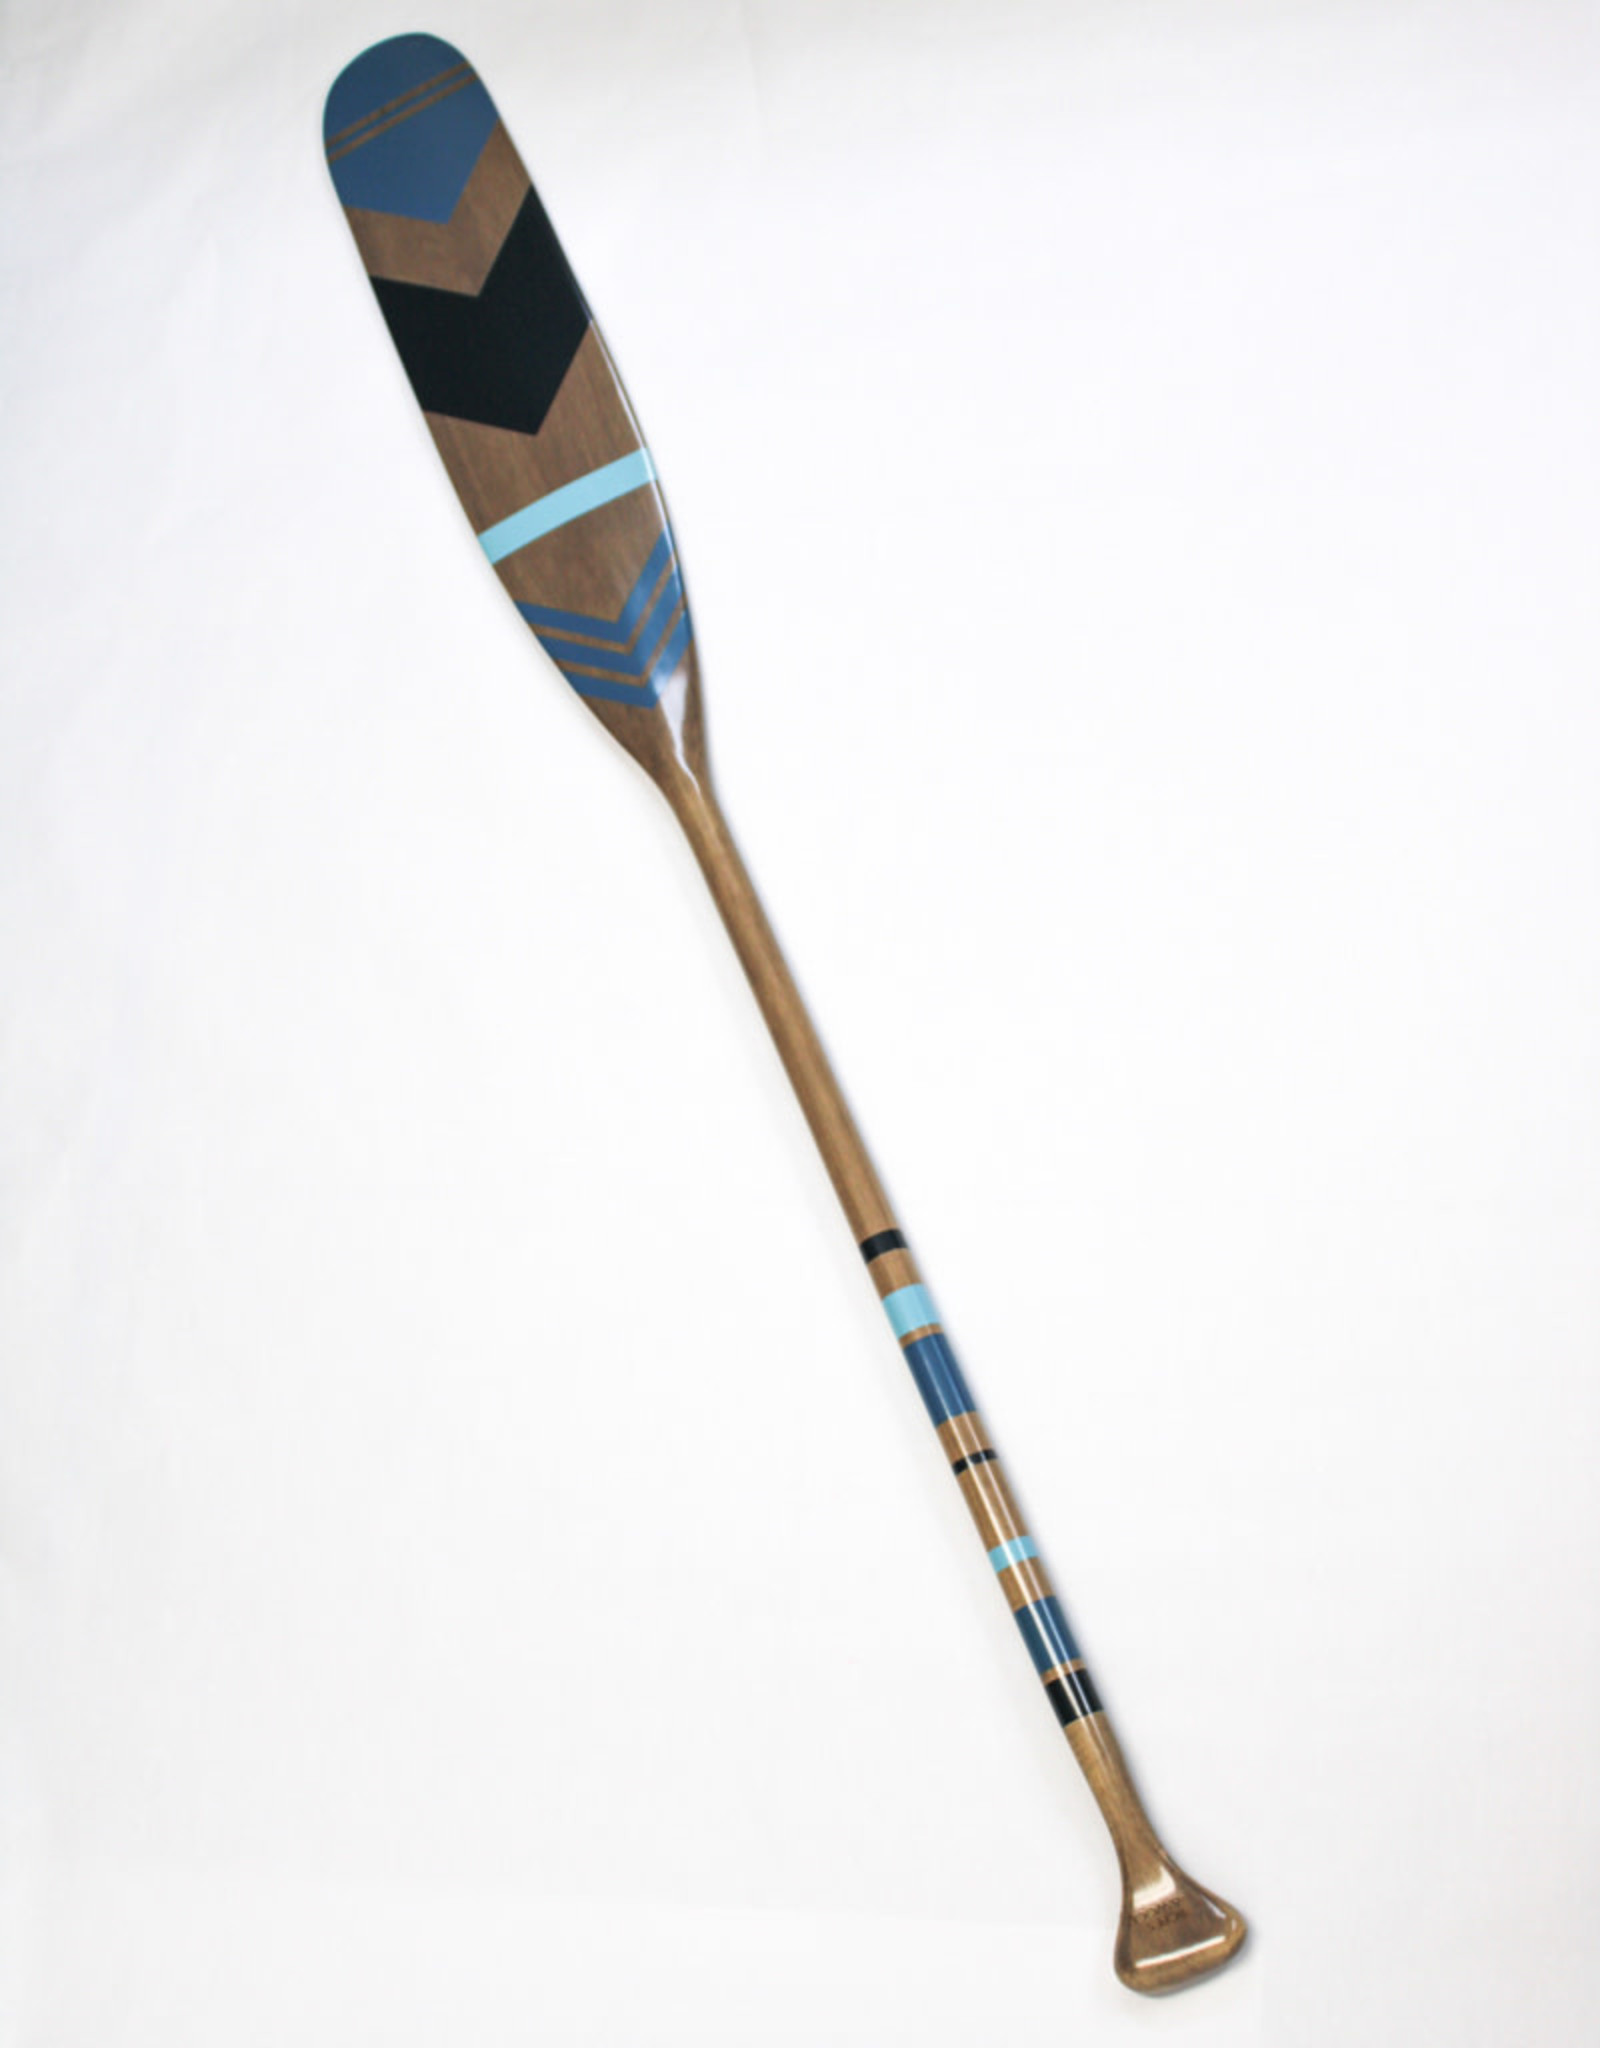 Ropes & Wood Large Paddle with Leather Mount